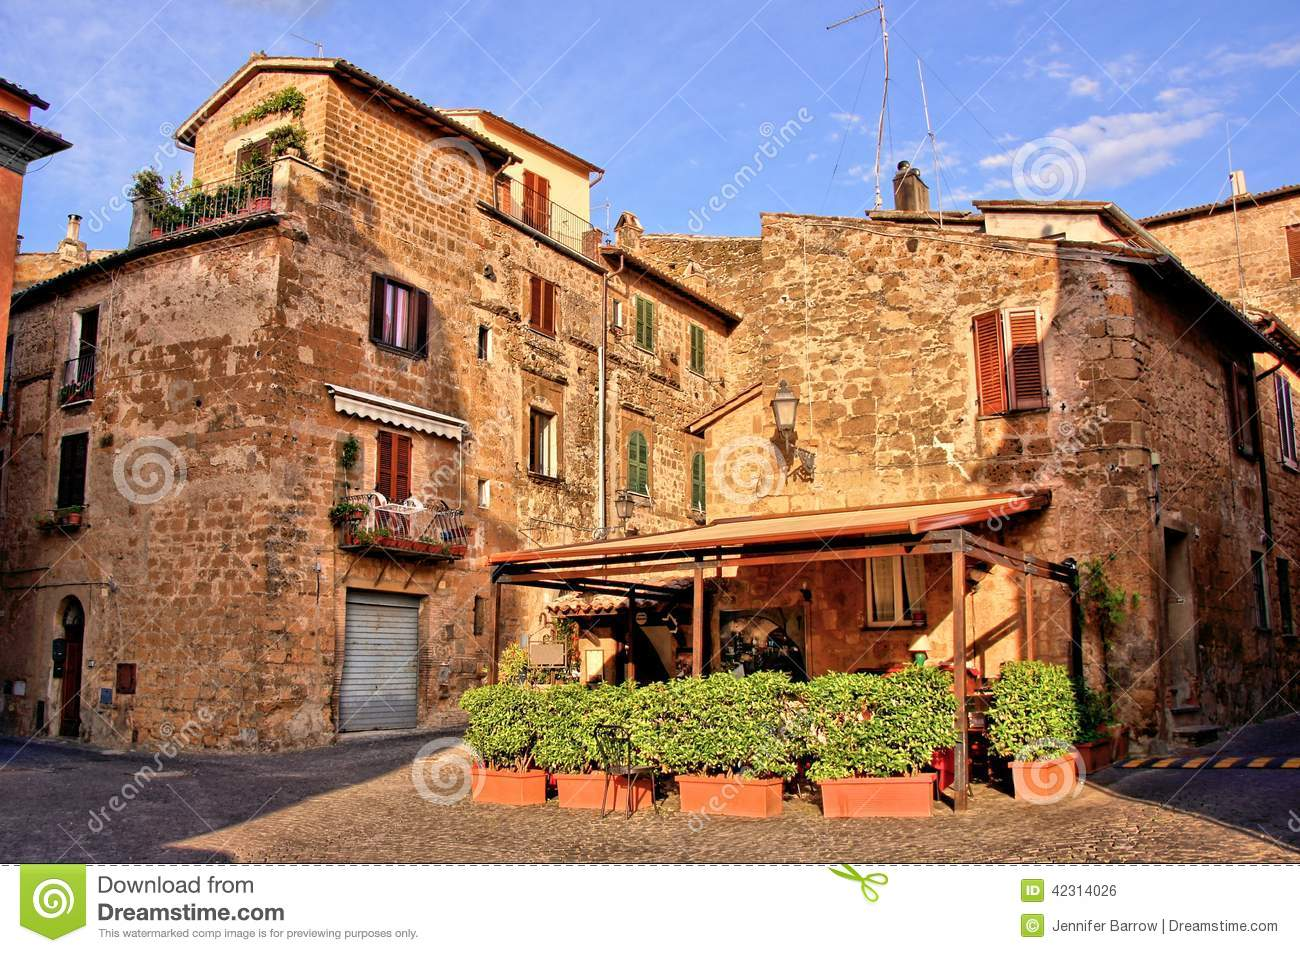 royalty free stock image medieval italian village image